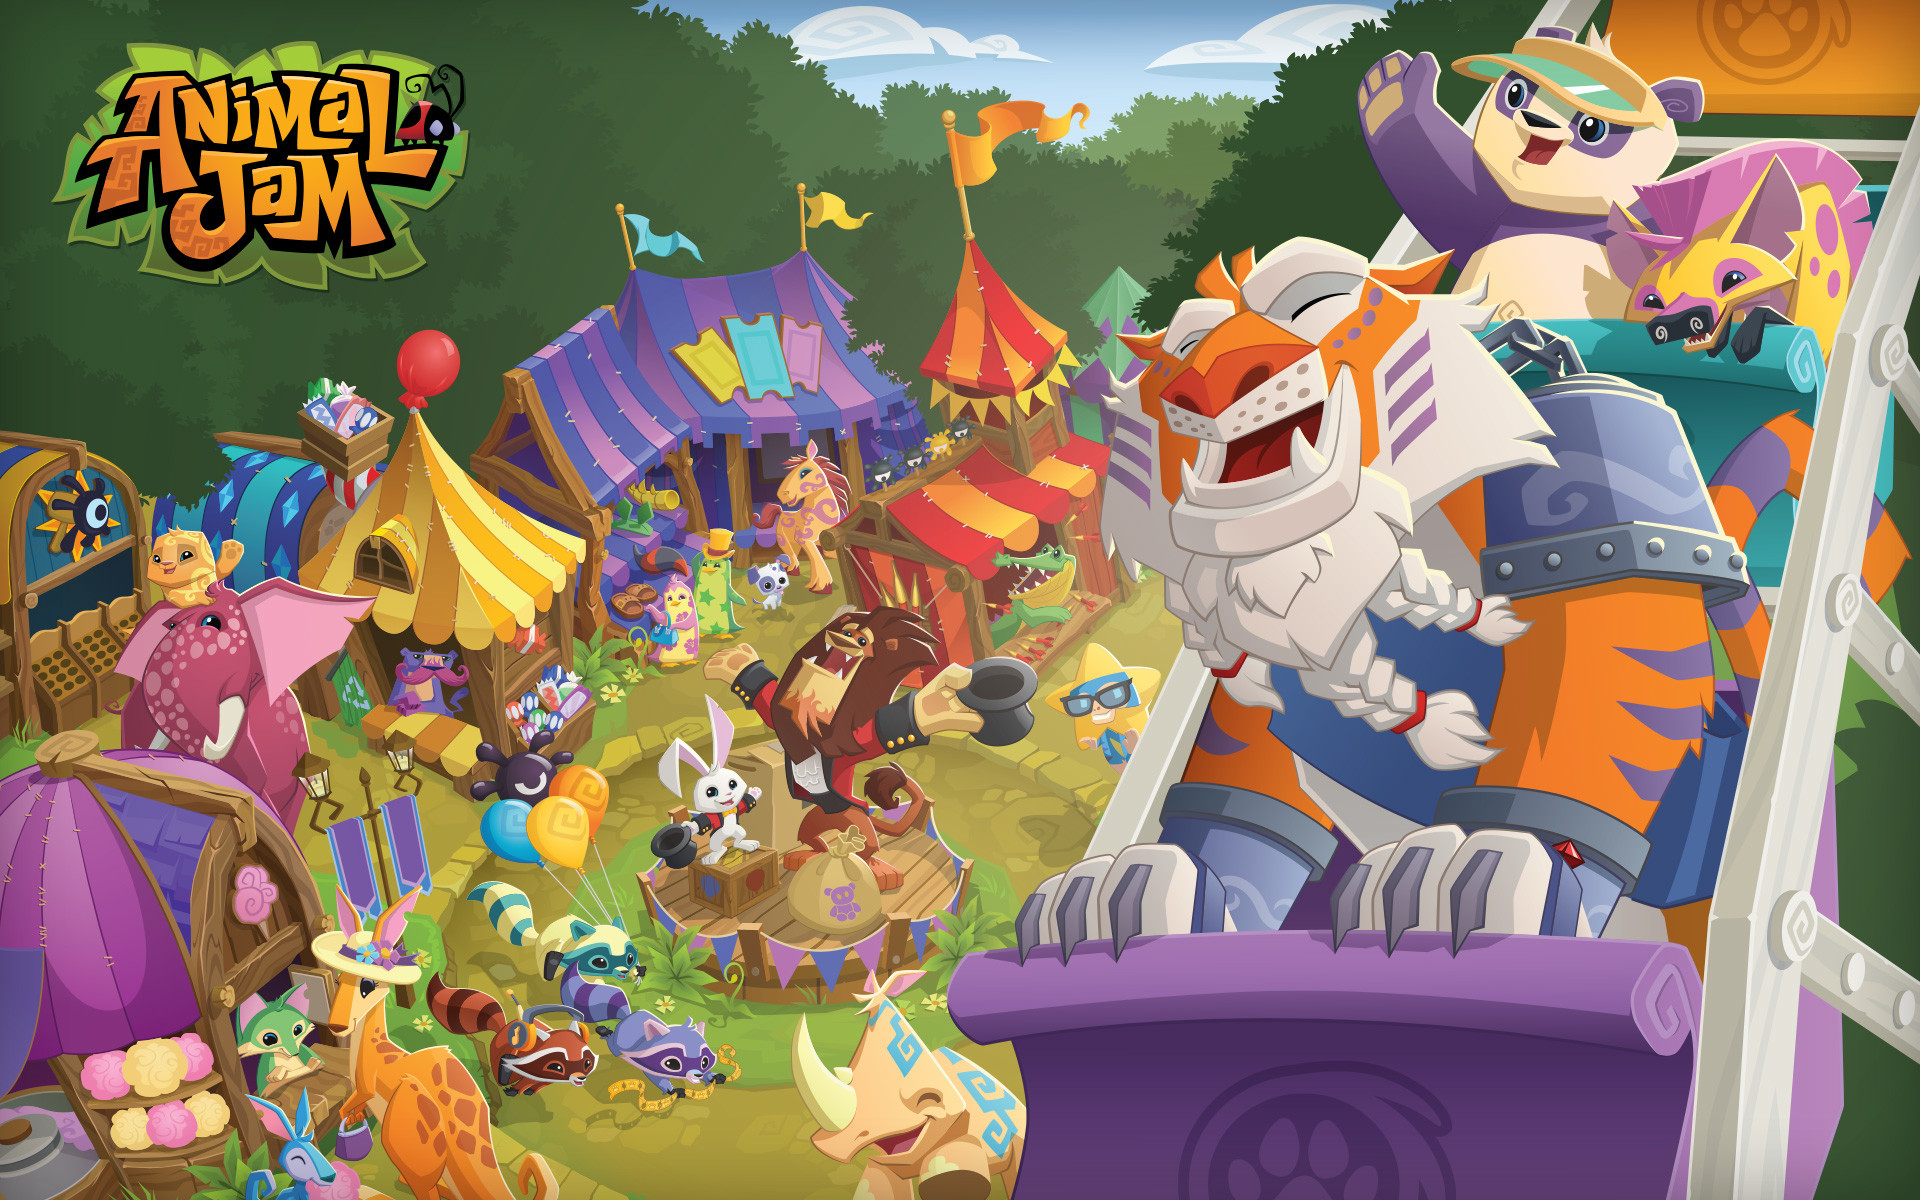 1920x1200 ANIMAL JAM | These neat wallpapers can be used for Bloger banners,  backgrounds .